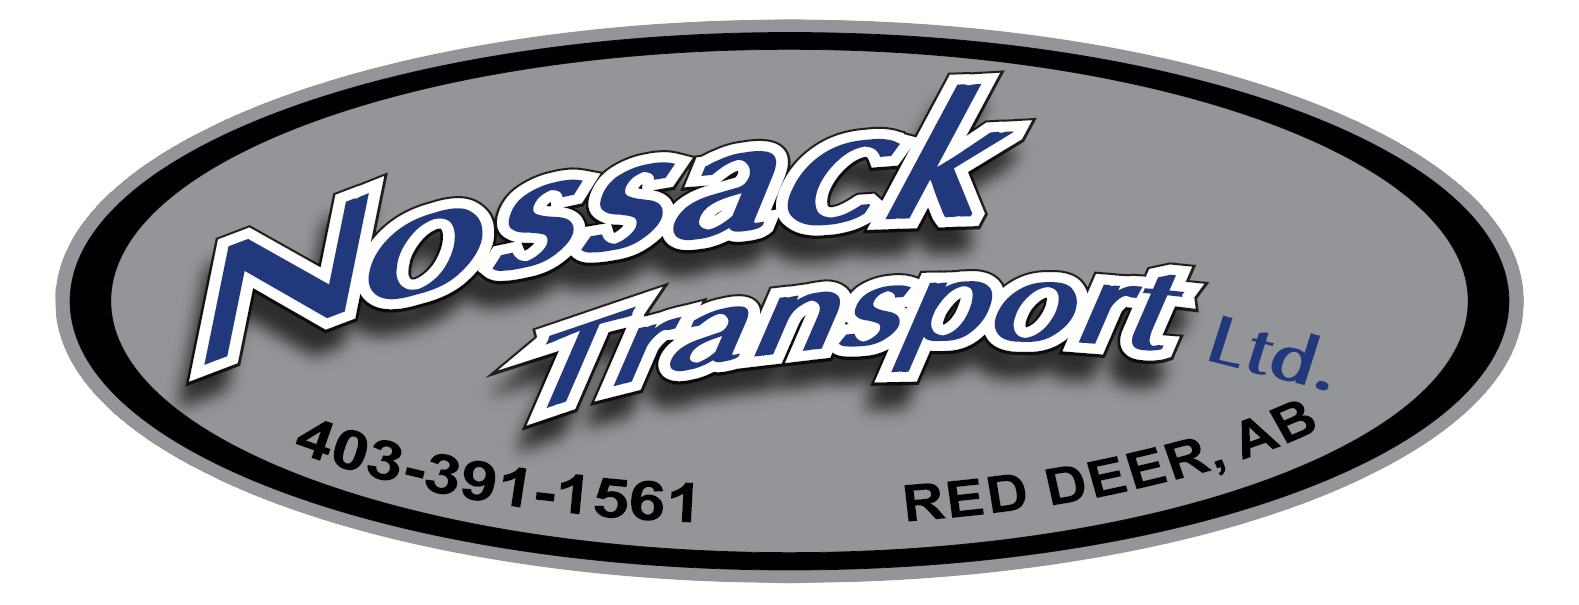 Nossack Transport Ltd.